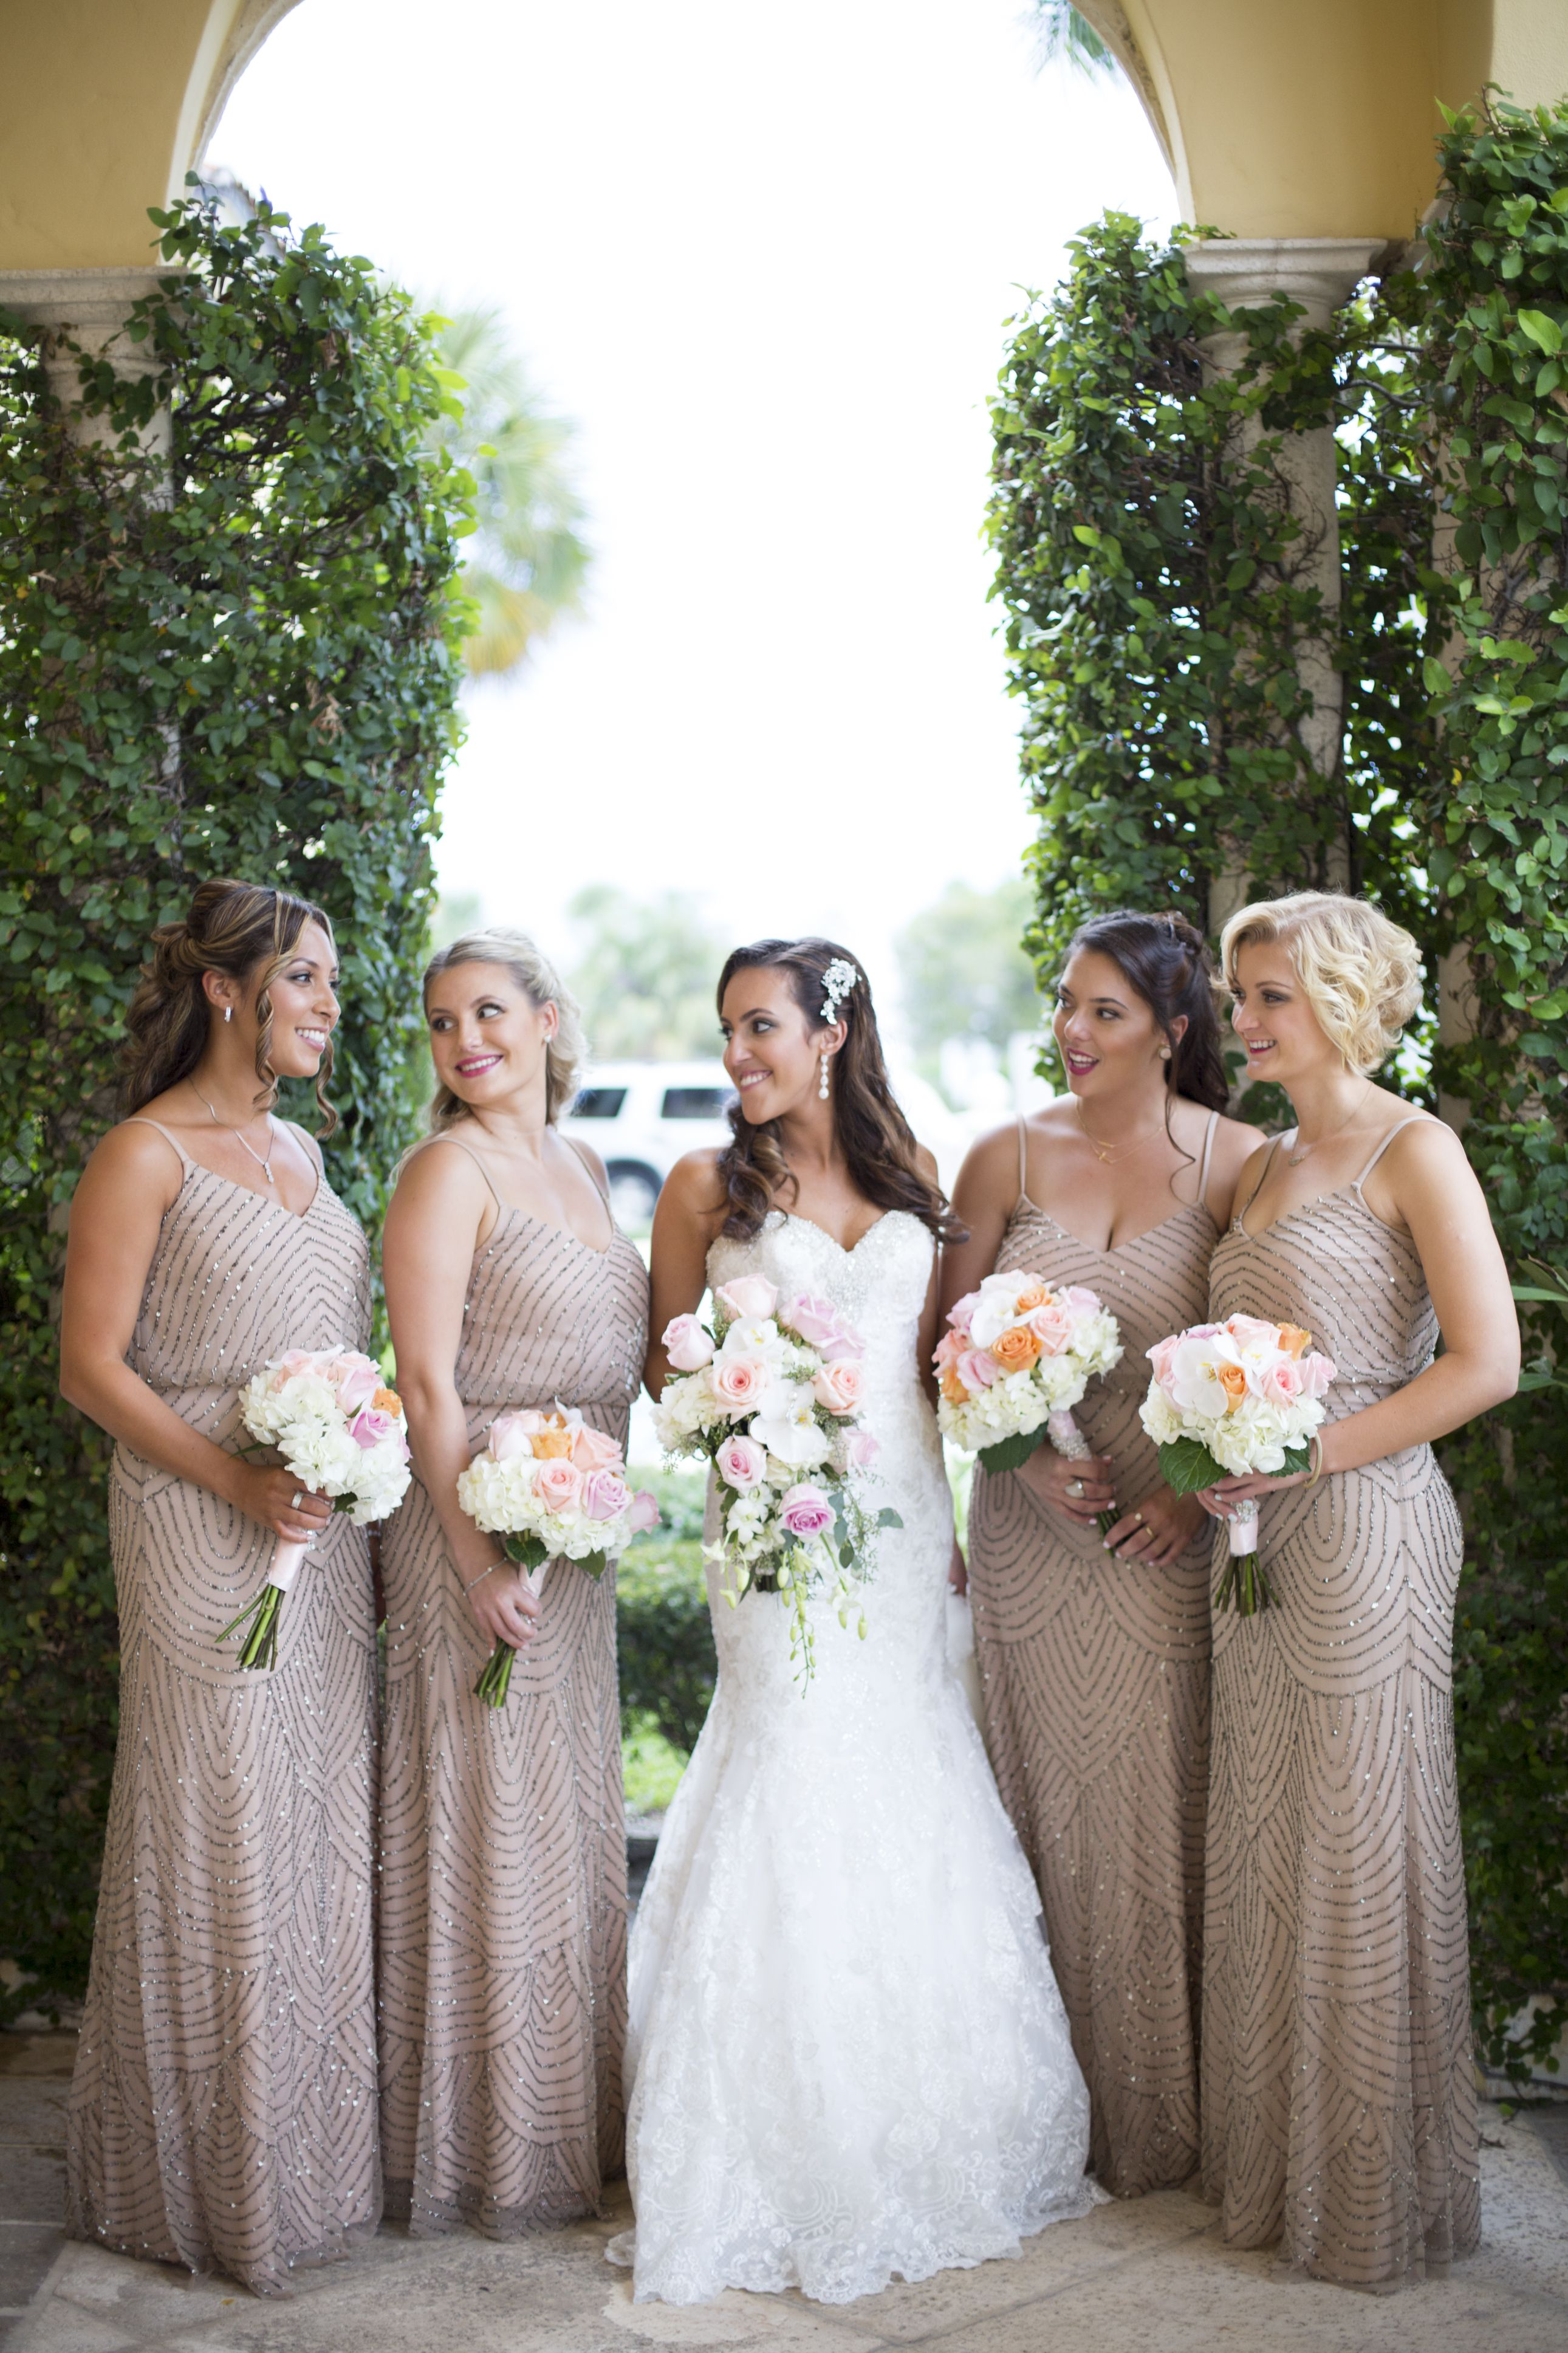 The bride and her girls at the addison champagne bridesmaid the bride and her girls at the champagne bridesmaid dresses soft pink rose bouquets romantic glamor heather funk photography ombrellifo Images